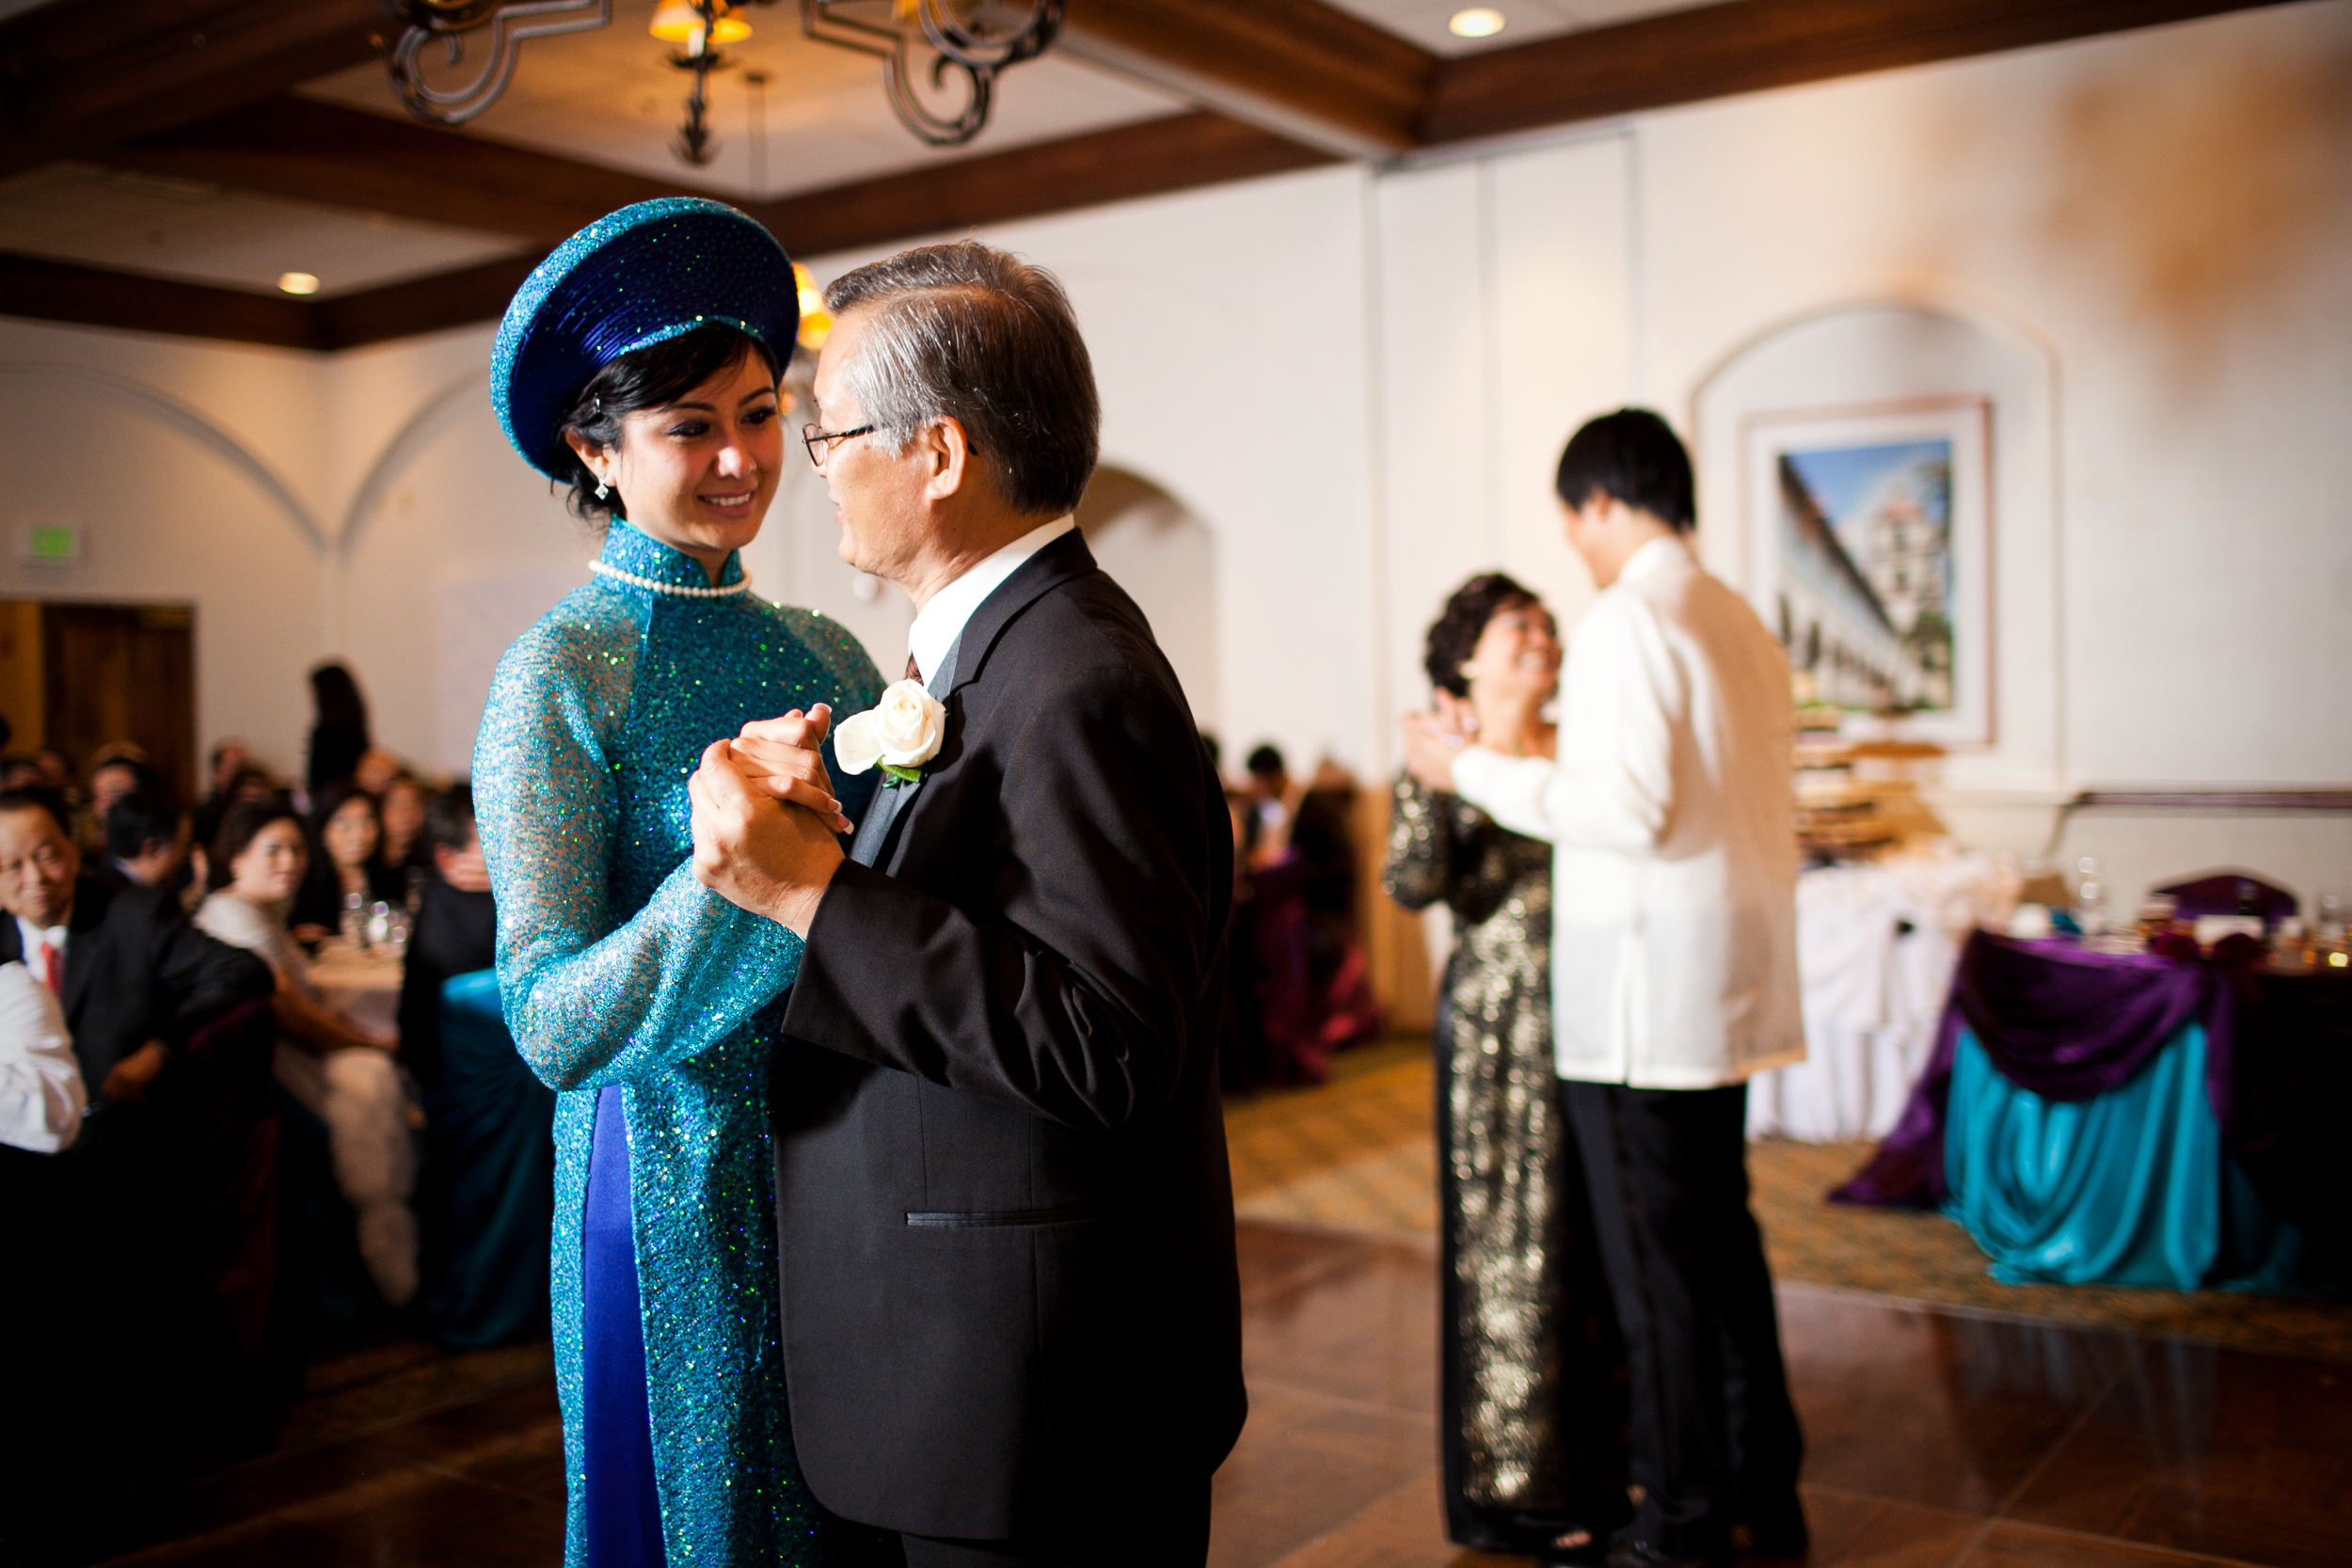 Picking the right song for the father/daughter dance is key to creating a memorable moment